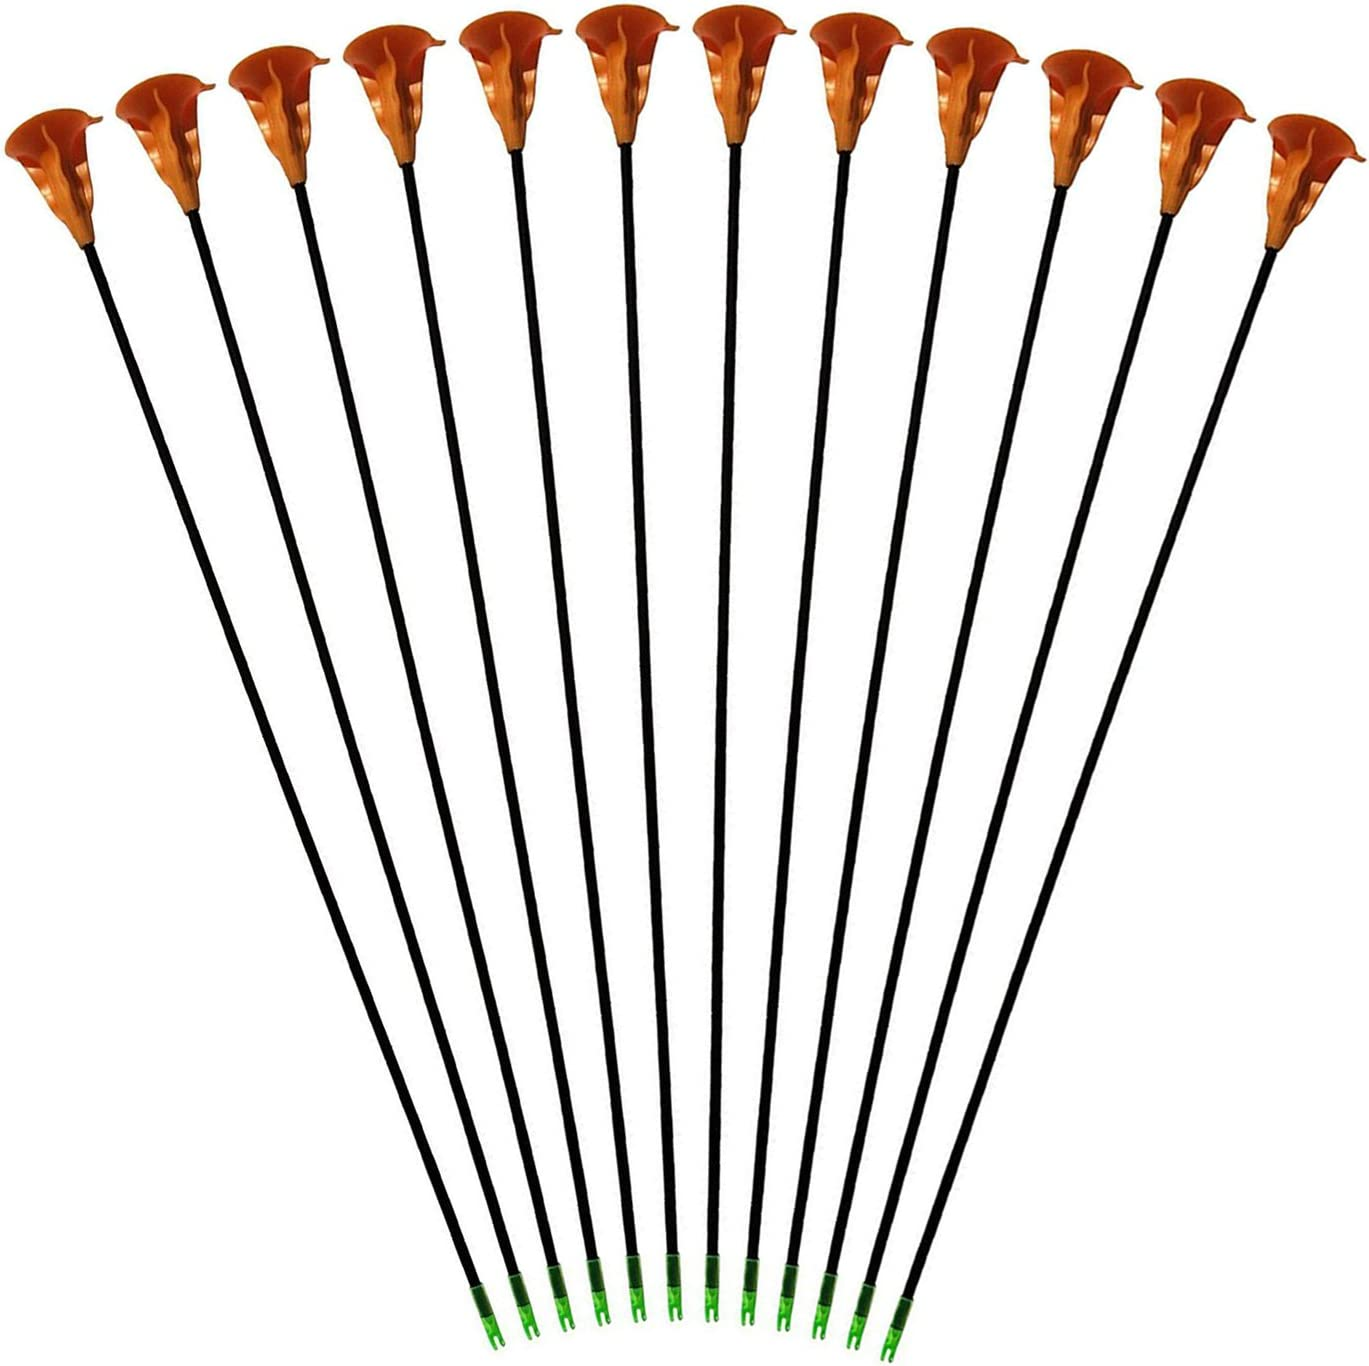 Sucker Cheap Arrows Free shipping anywhere in the nation Childrens 12pack Kids Youth Safe Archery Hunting G